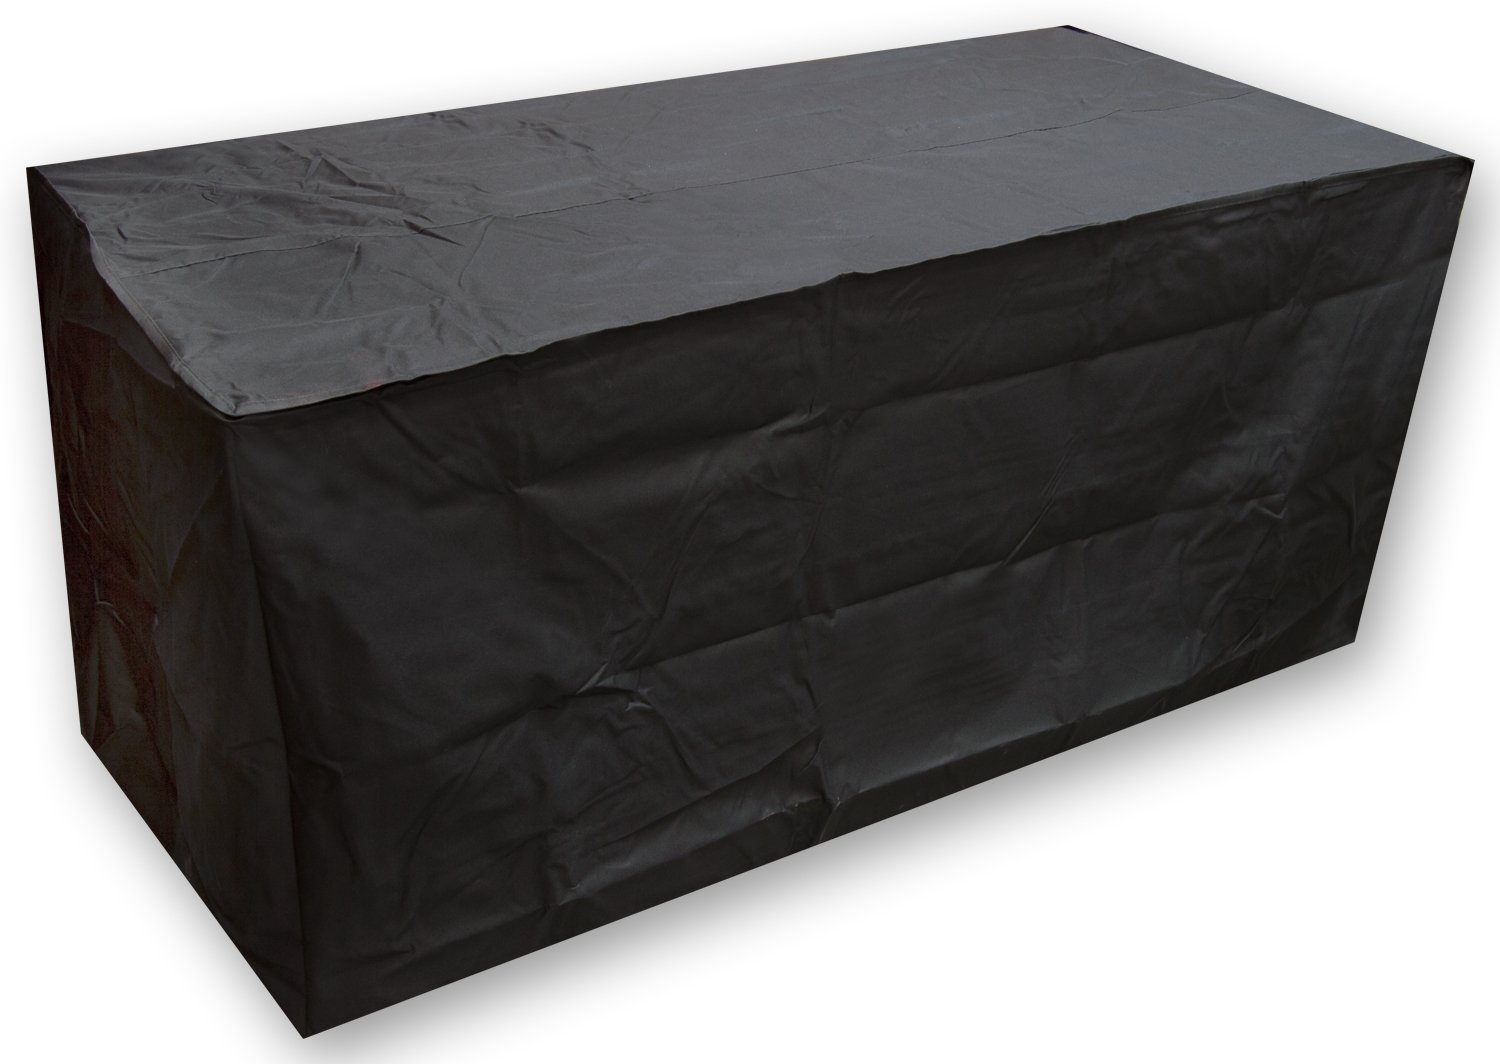 Elevavie Table Cover Waterproof Outdoor Garden Furniture Protective Cover Black Heavy Duty (123x123x74cm/48.43x48.43x29.13inch)